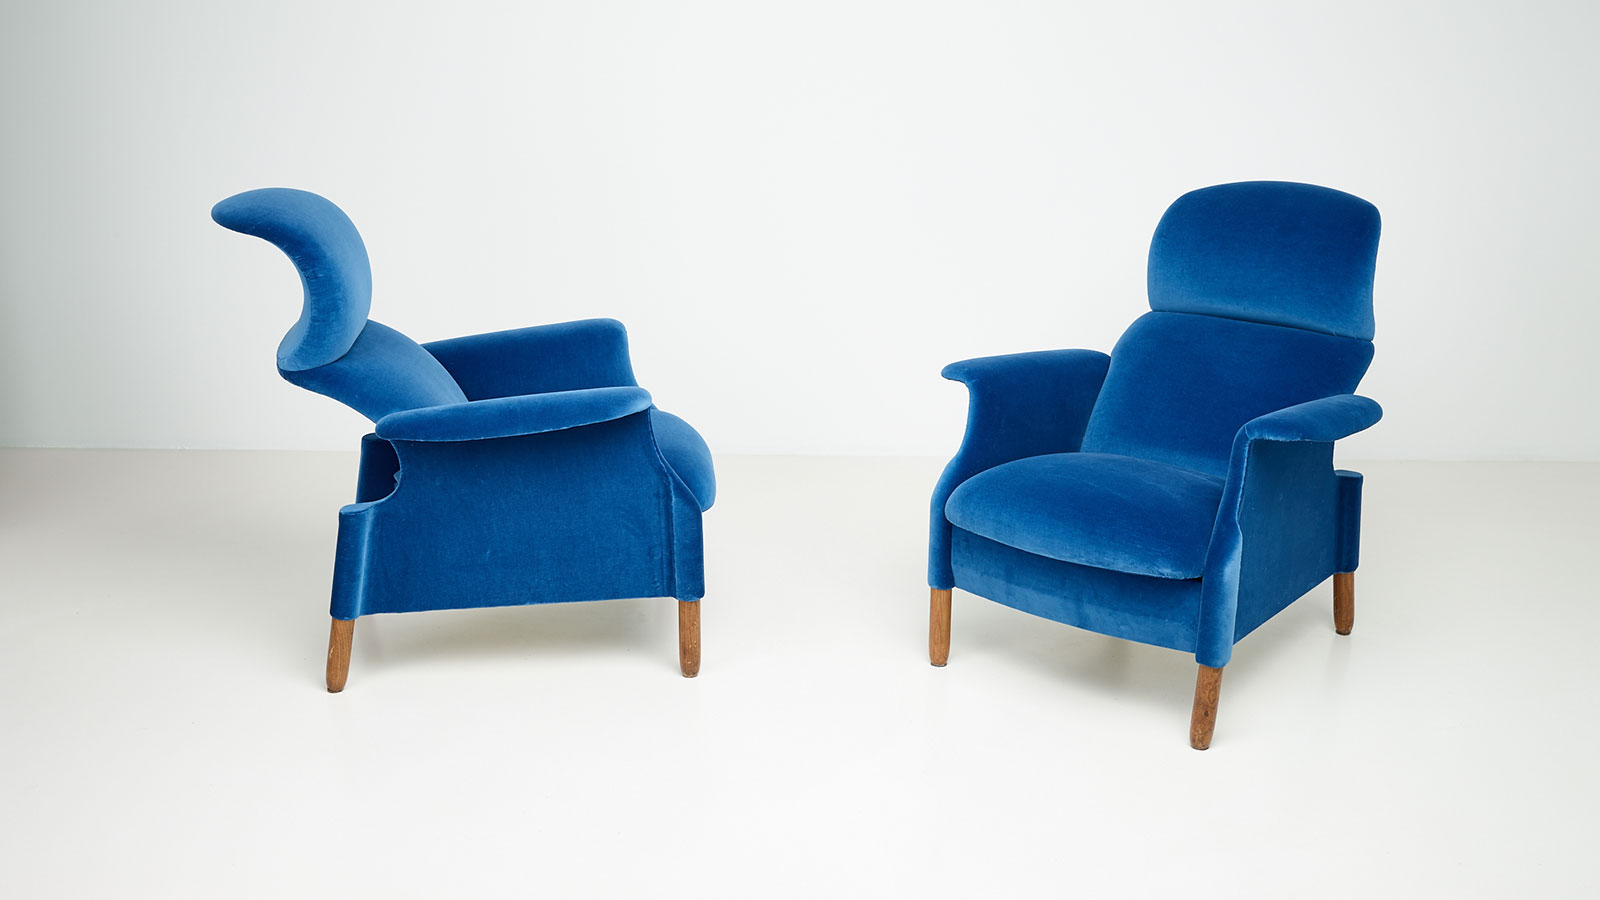 Sanluca armchairs by Achille and Pier Giacomo Castiglioni | Paradisoterrestre